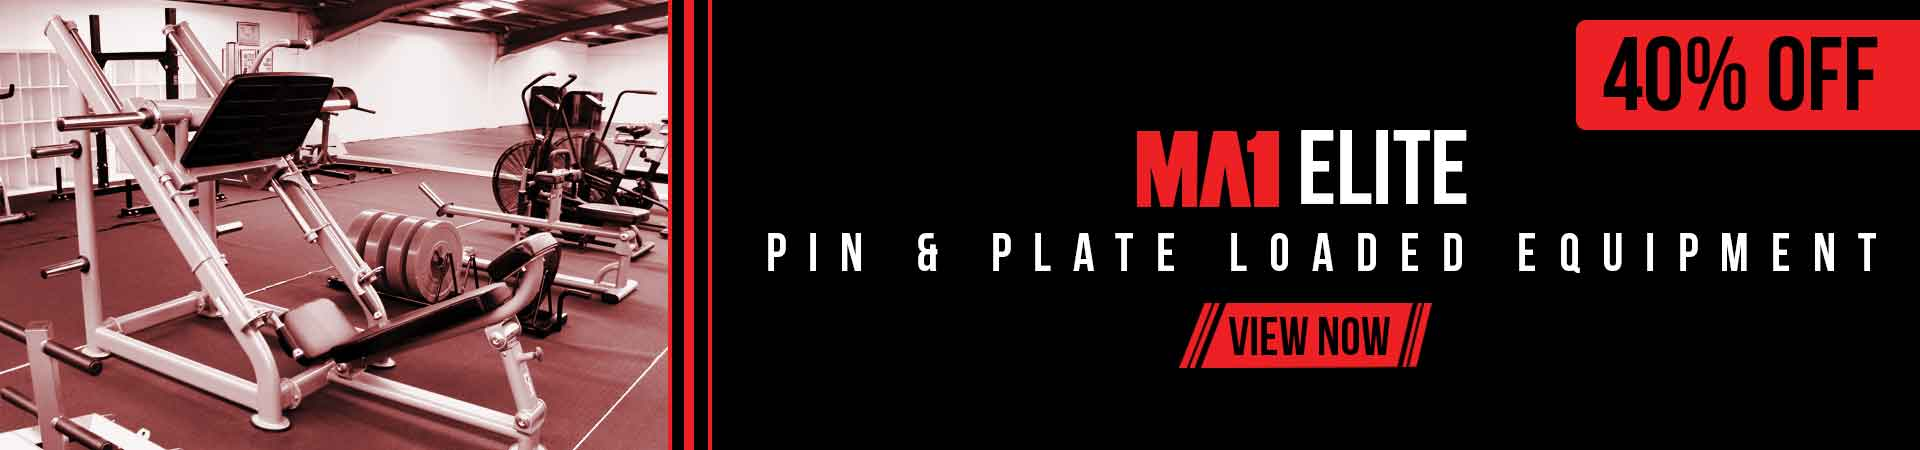 40% off MA1 Elite Pin & Plate Loaded Equipment